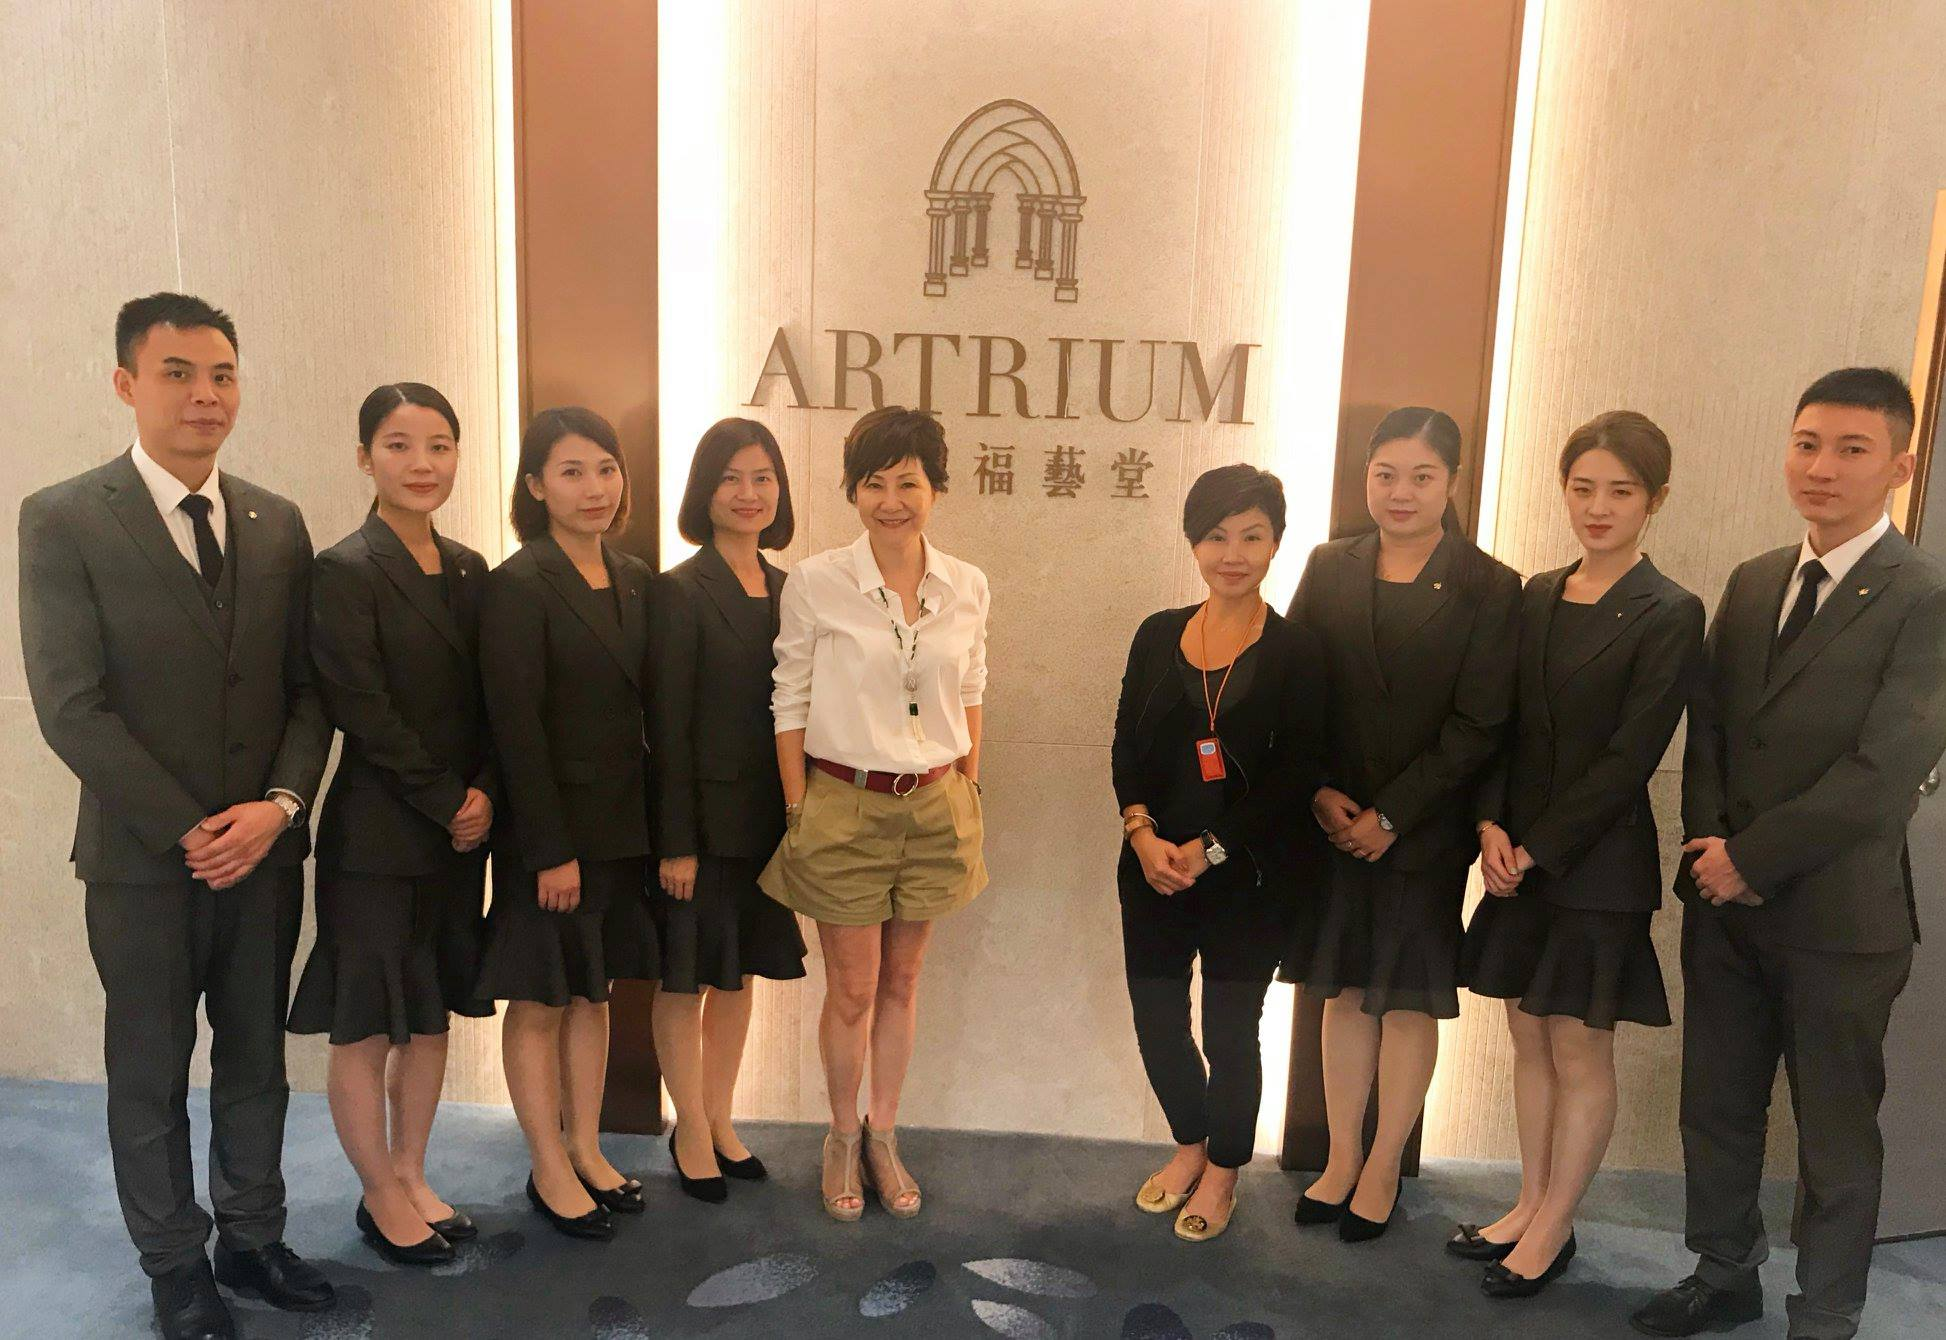 Artrium (周大福艺堂 Chow Tai Fook Yi Tang) in Changsha   Exceptional Customer Value for Top Seller and High Flyers Sales Program via Business Growth mindDer™ and Enneagram (High Flyer Sales & Middle Management, 2018